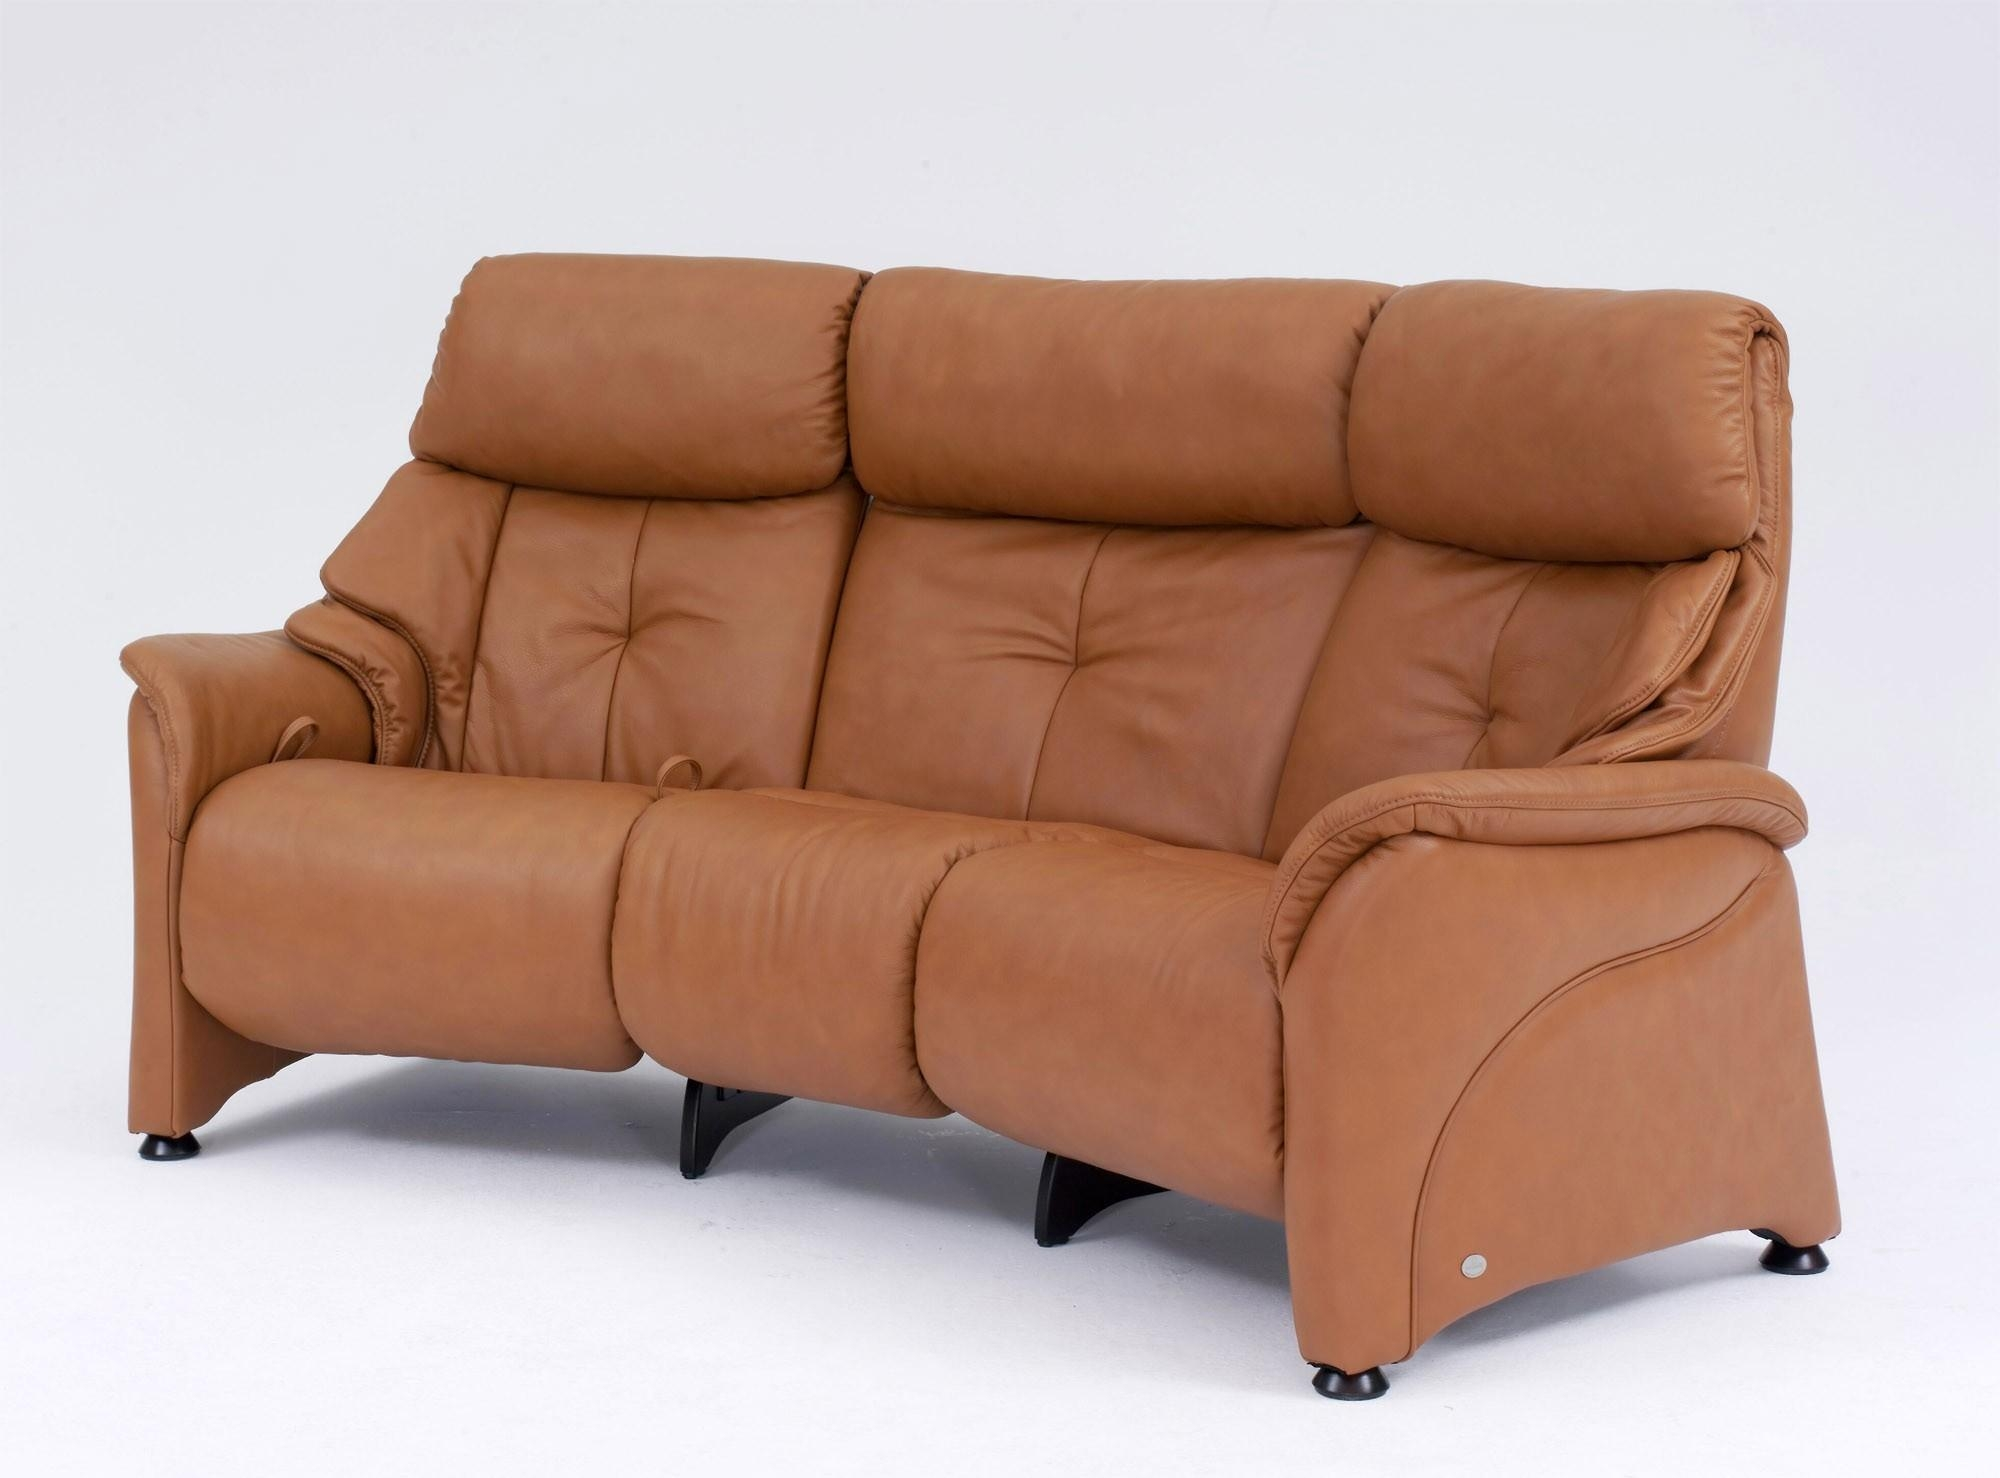 Himolla Chester Curved 3 Seater Manual Reclining Sofa | Tr Hayes Inside Curved Recliner Sofa (View 20 of 20)